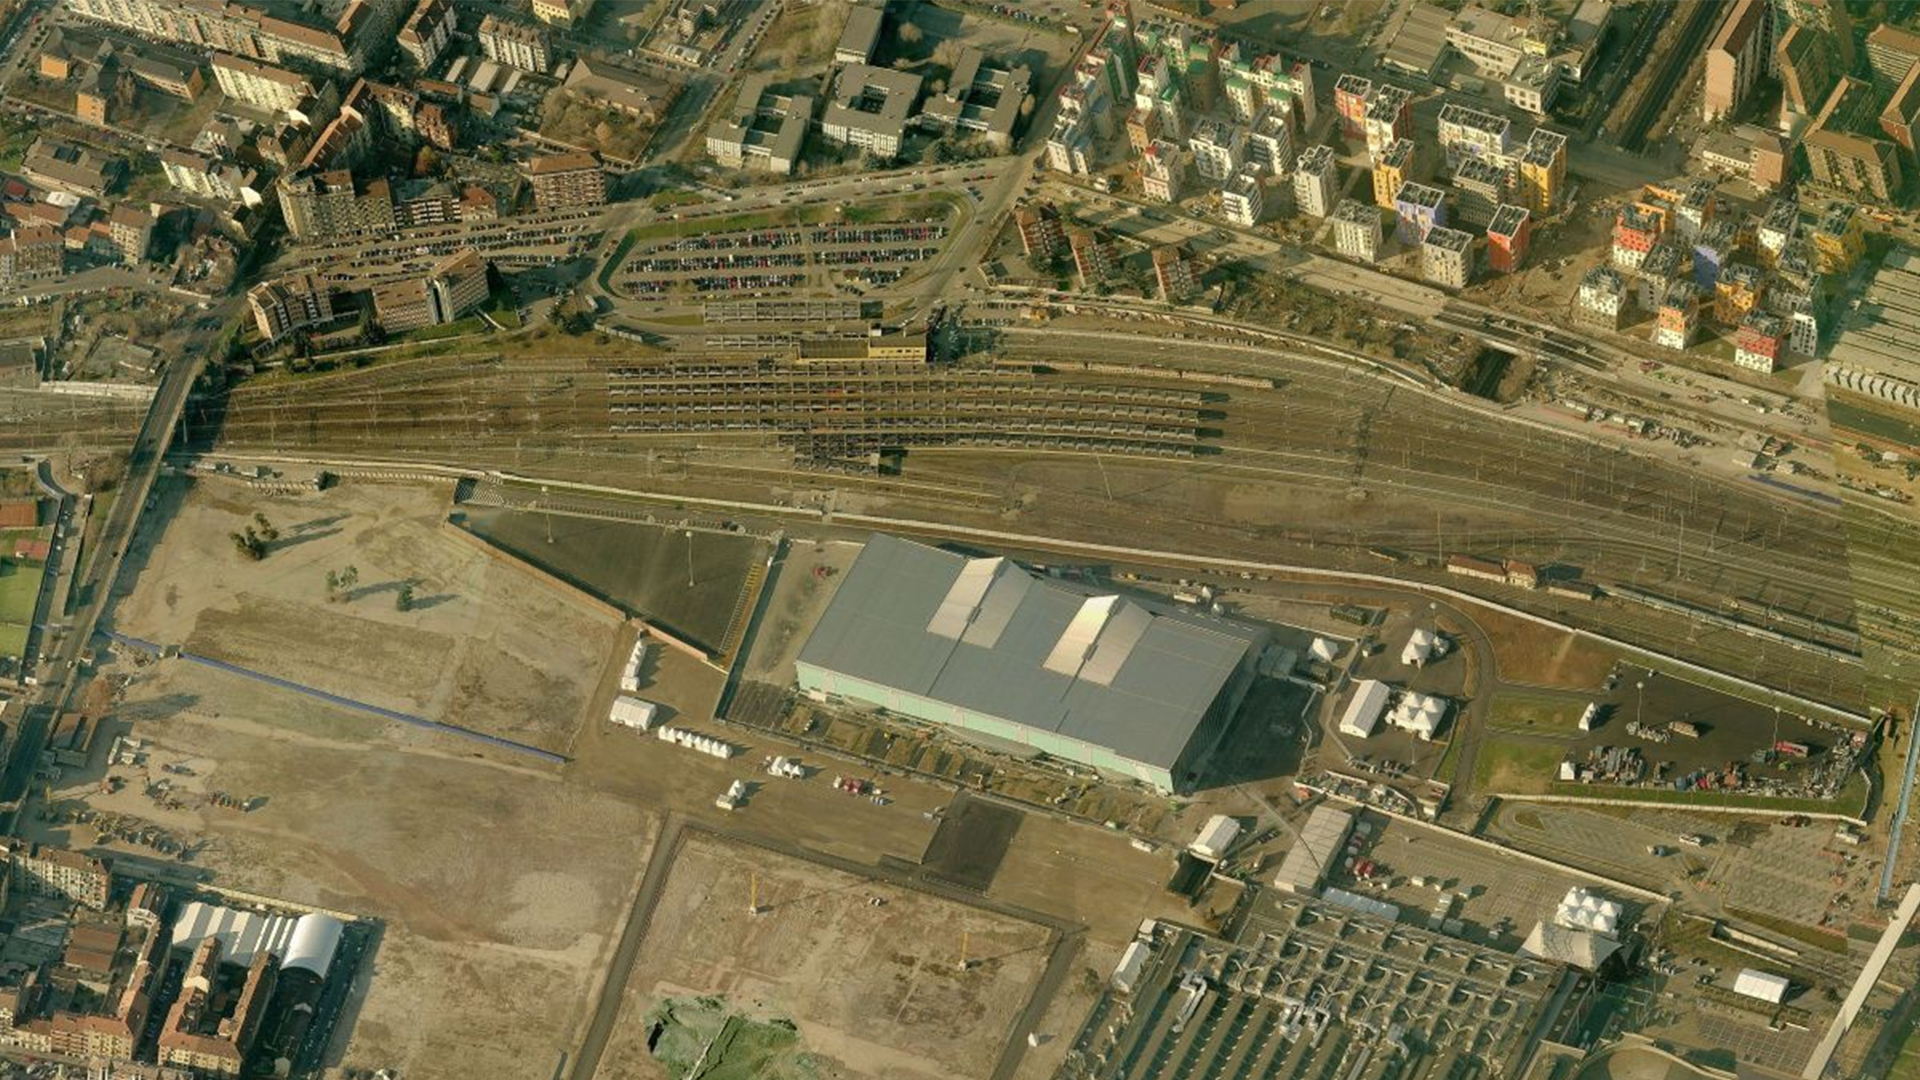 Turin railway Stations – Upgrading of the Railway Line